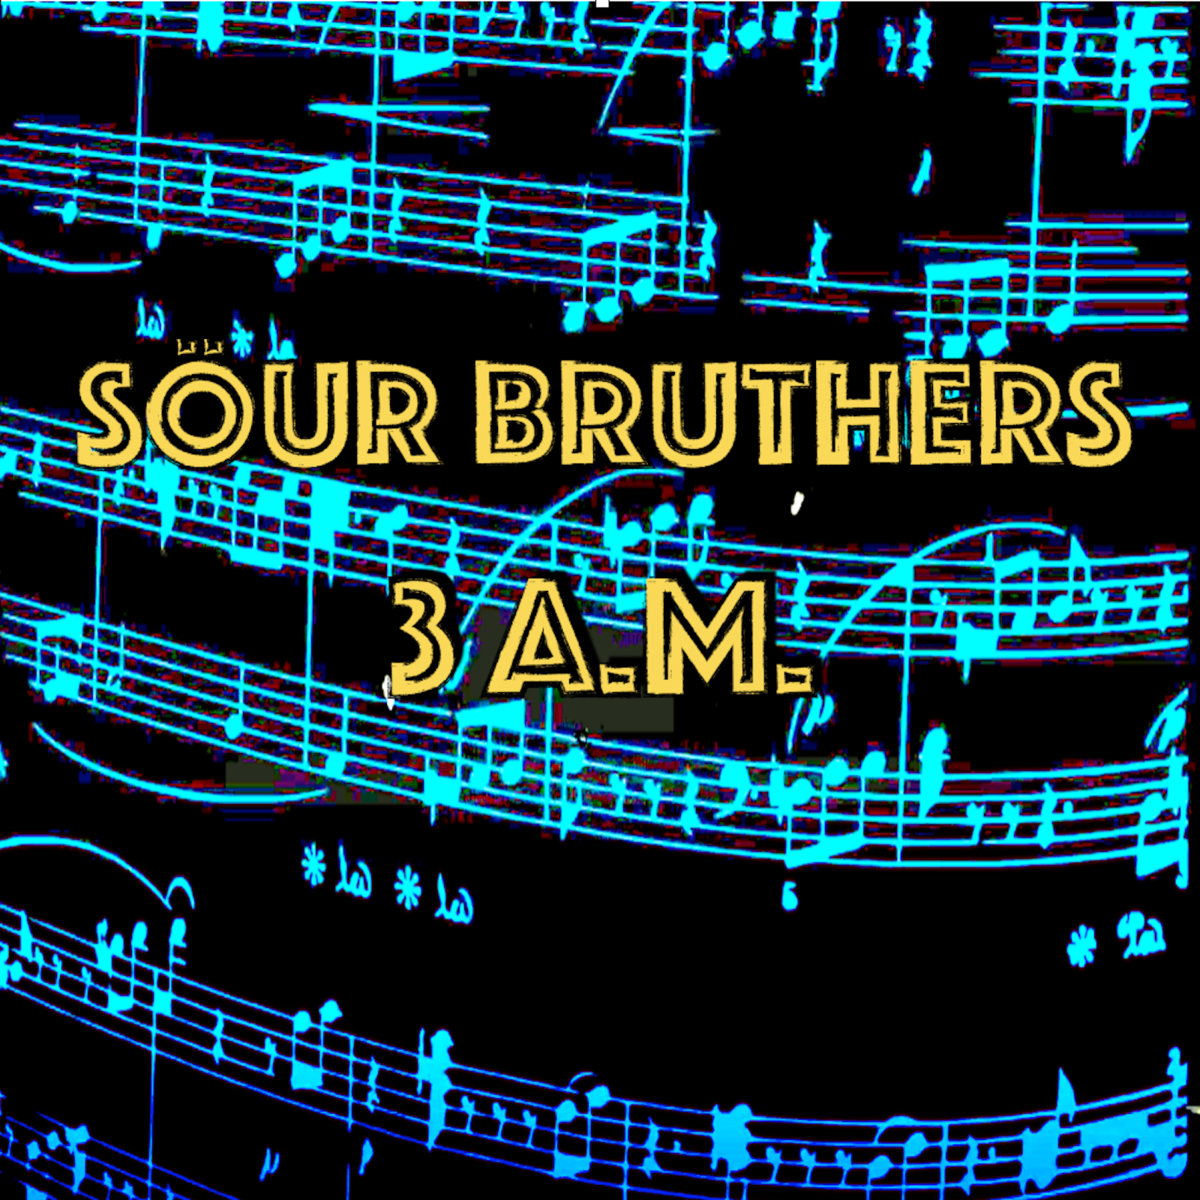 3 a.m. by Söur Bruthers